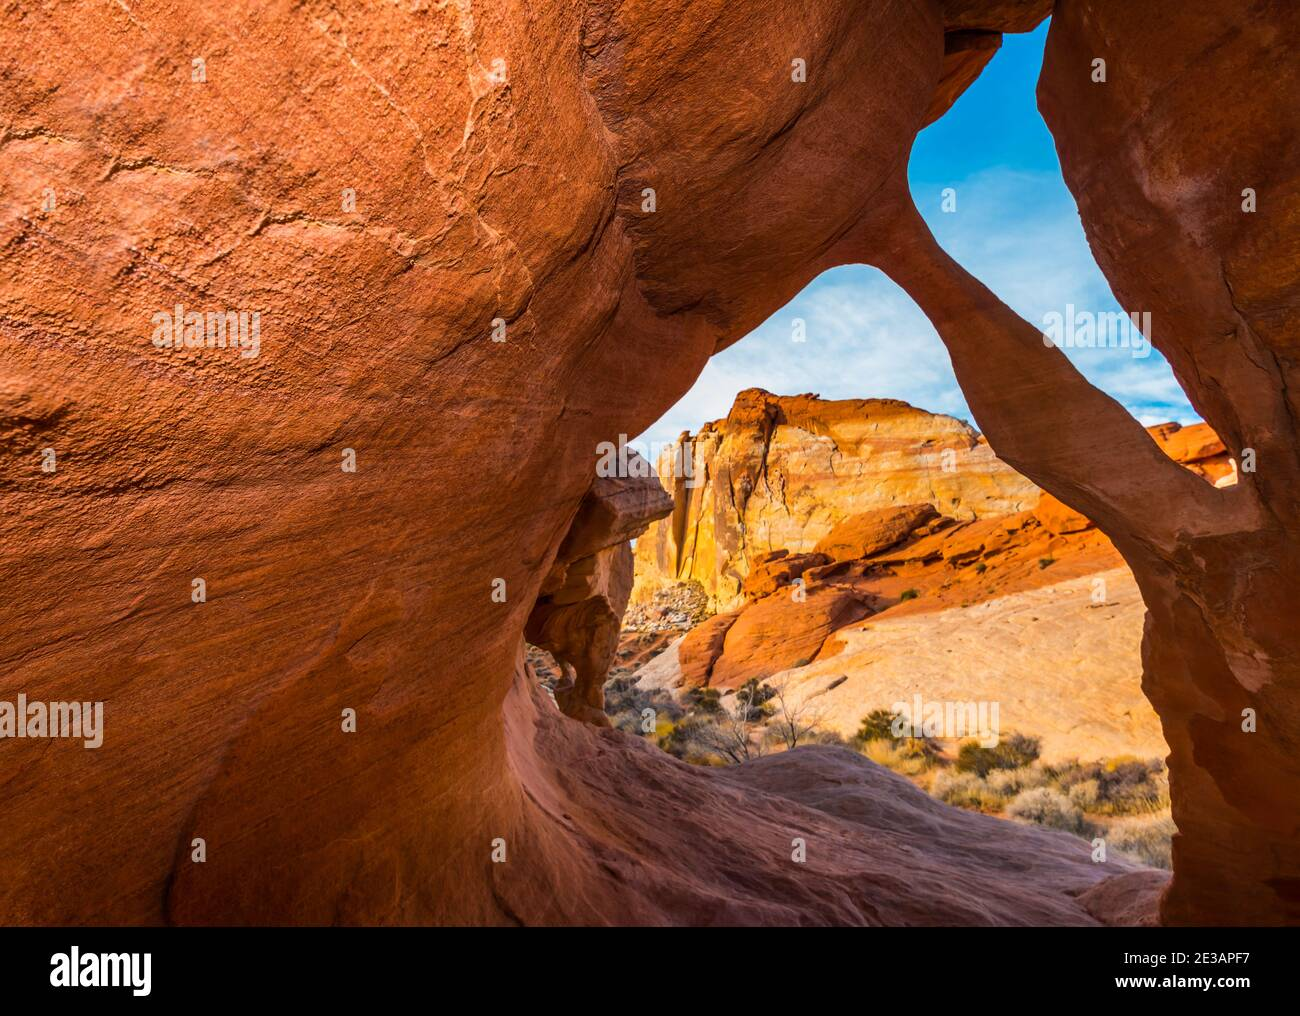 Fire Cave Arch With The White Domes in the Distance, Valley of Fire State Park, Nevada, USA Stock Photo